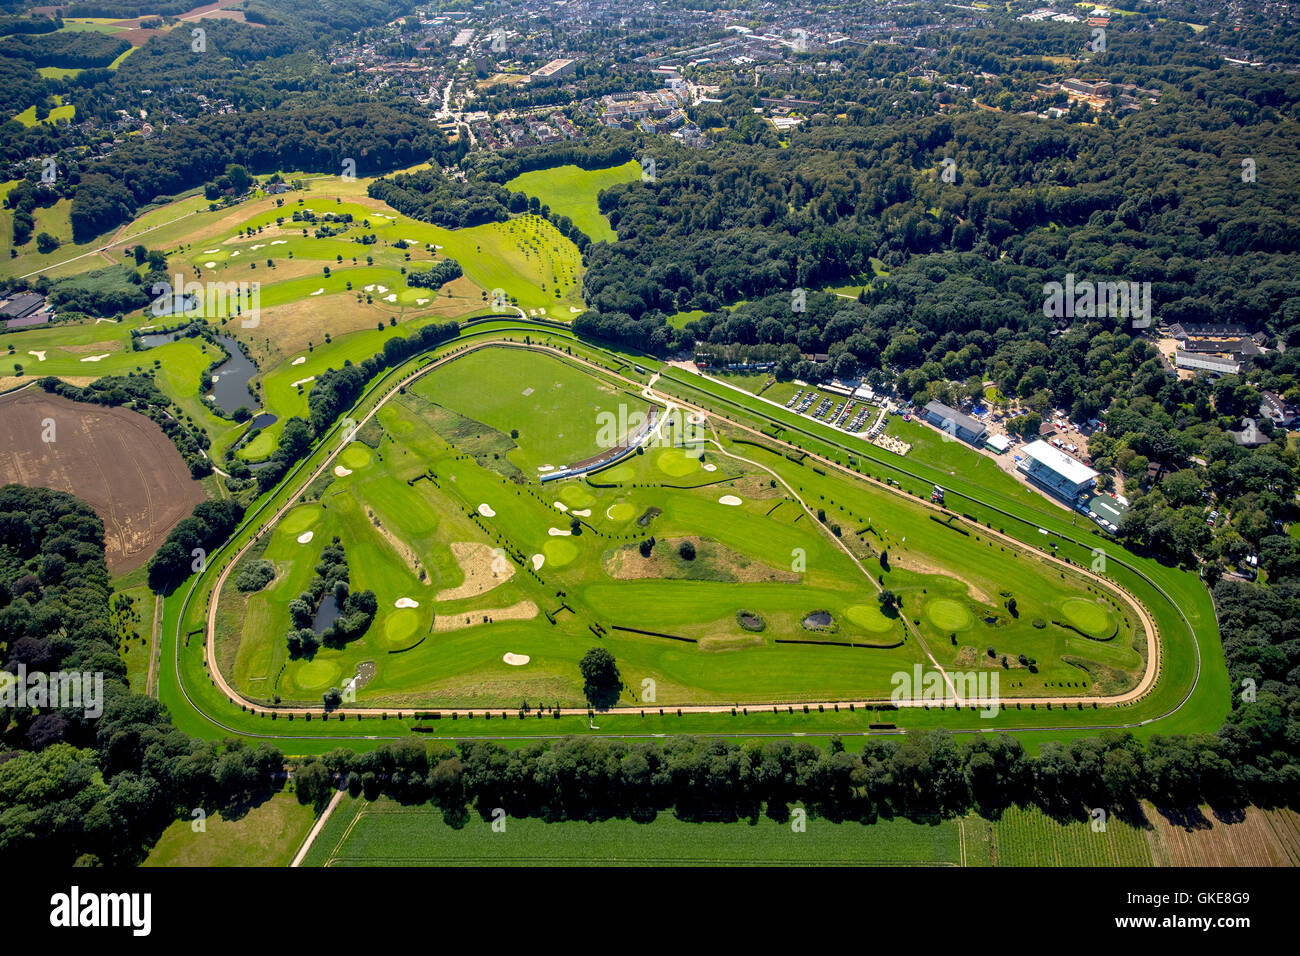 Aerial view, golf Dusseldorf-Grafenberg and gallop racecourse Grafenberg, Dusseldorf, Rhineland, north rhine-westphalia, - Stock Image